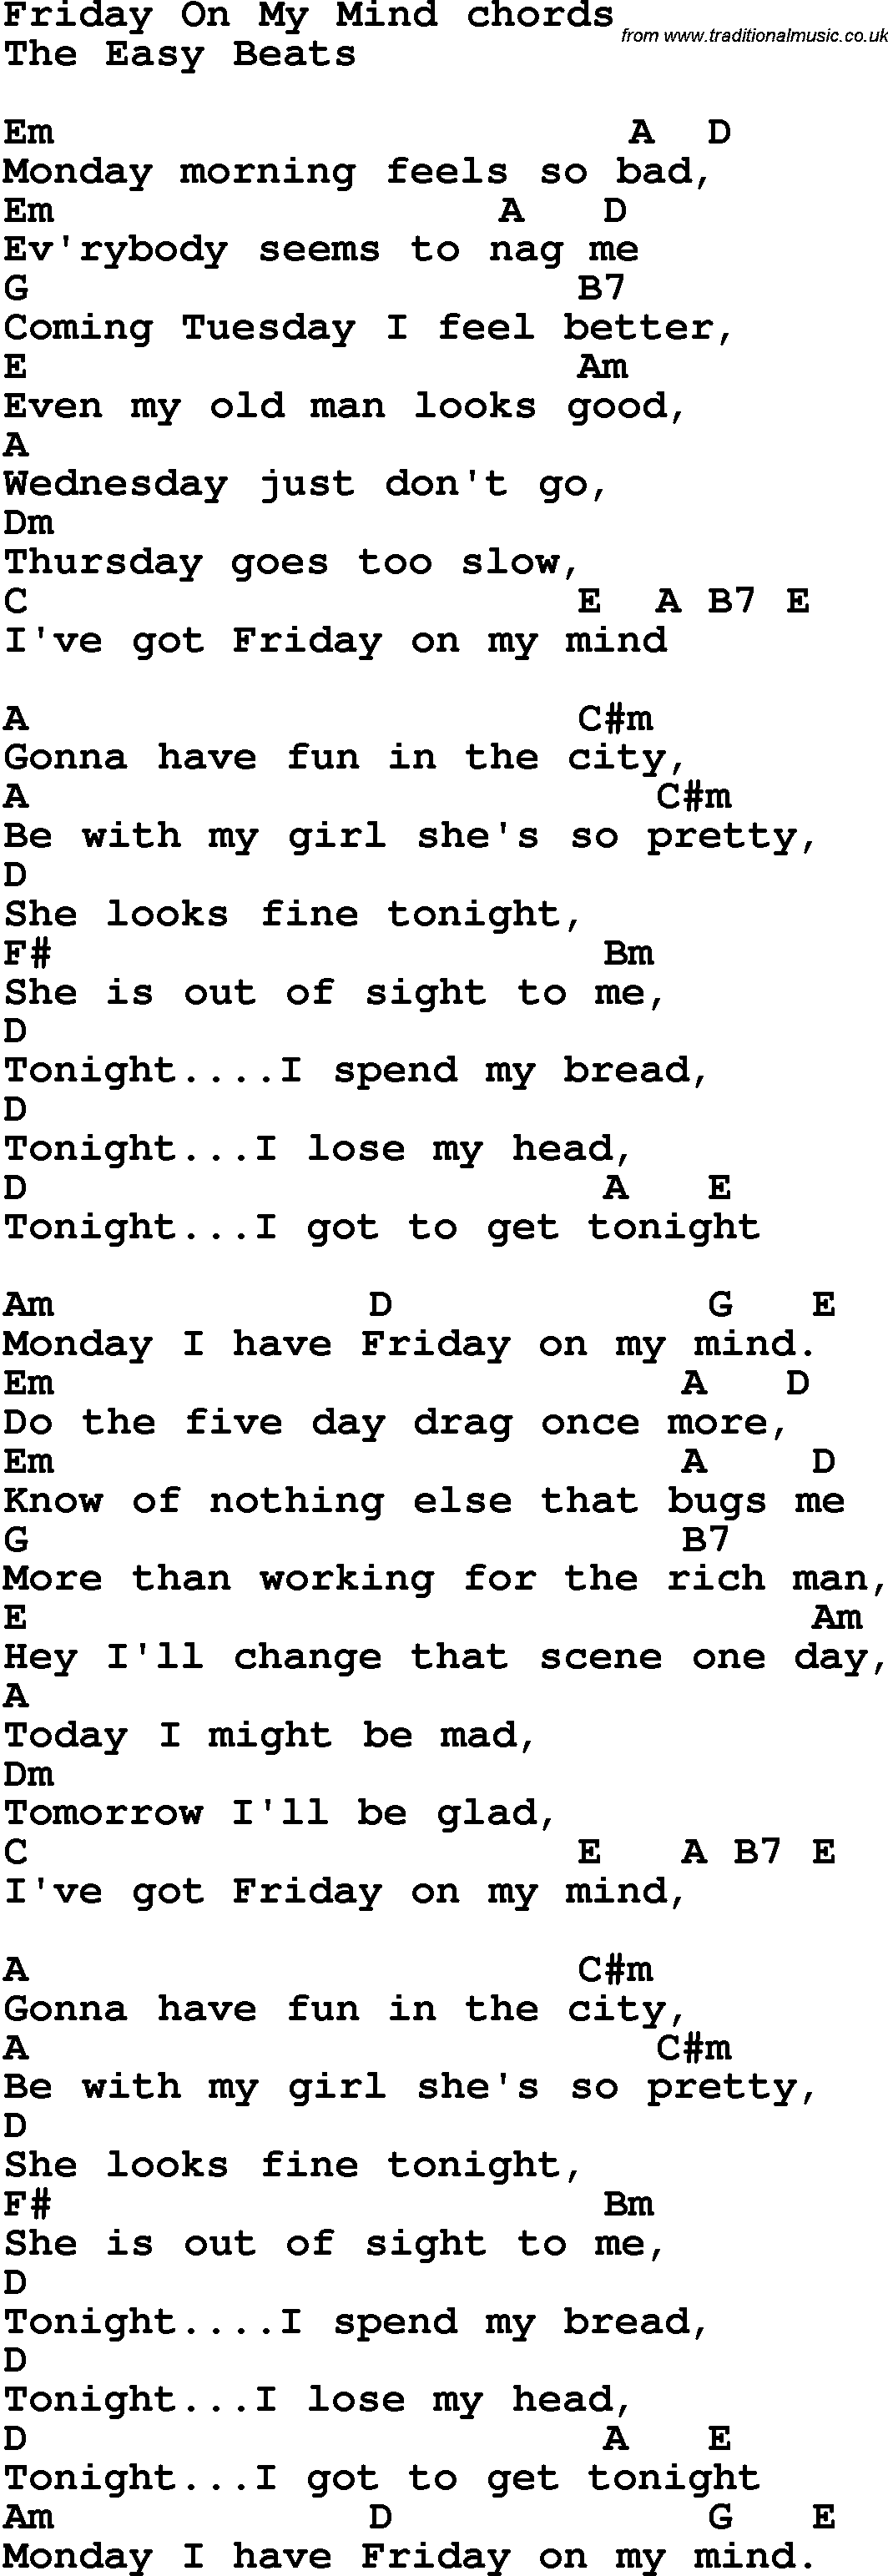 Song Lyrics With Guitar Chords For Friday On My Mind